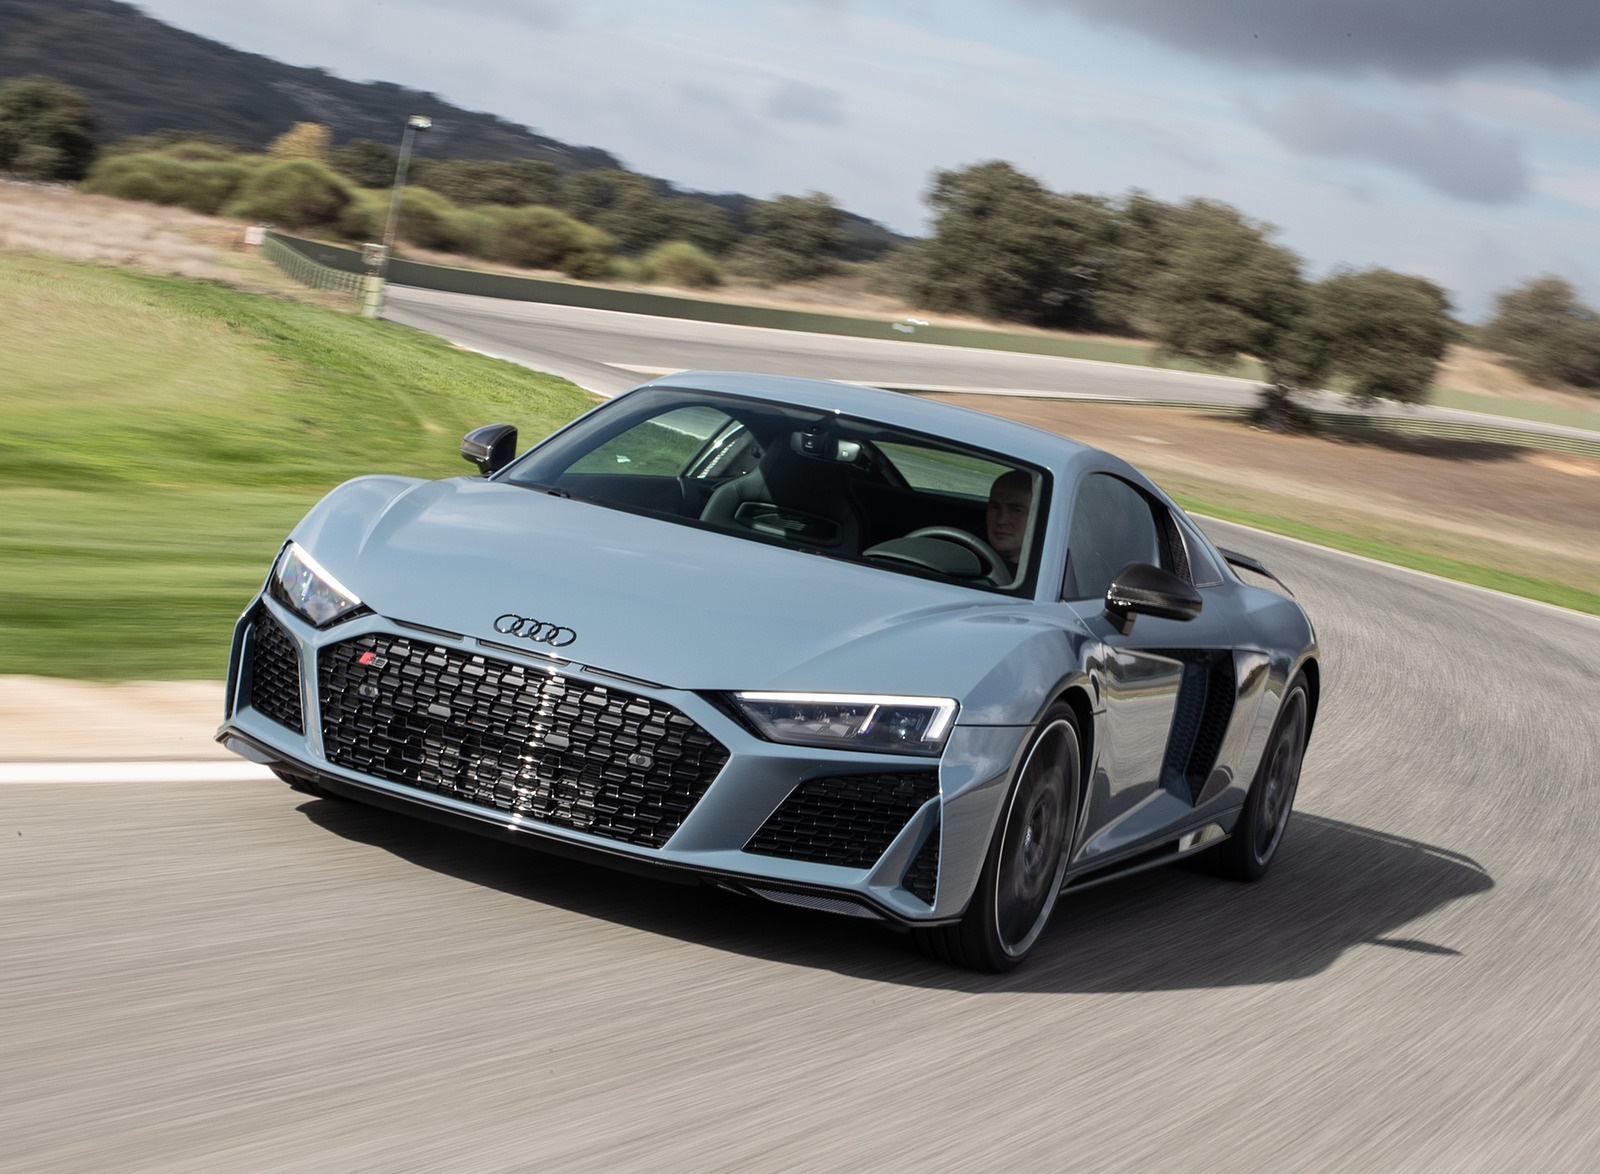 2019 Audi R8 V10 Coupe (Color: Kemora Gray Metallic) Front Wallpaper (12)